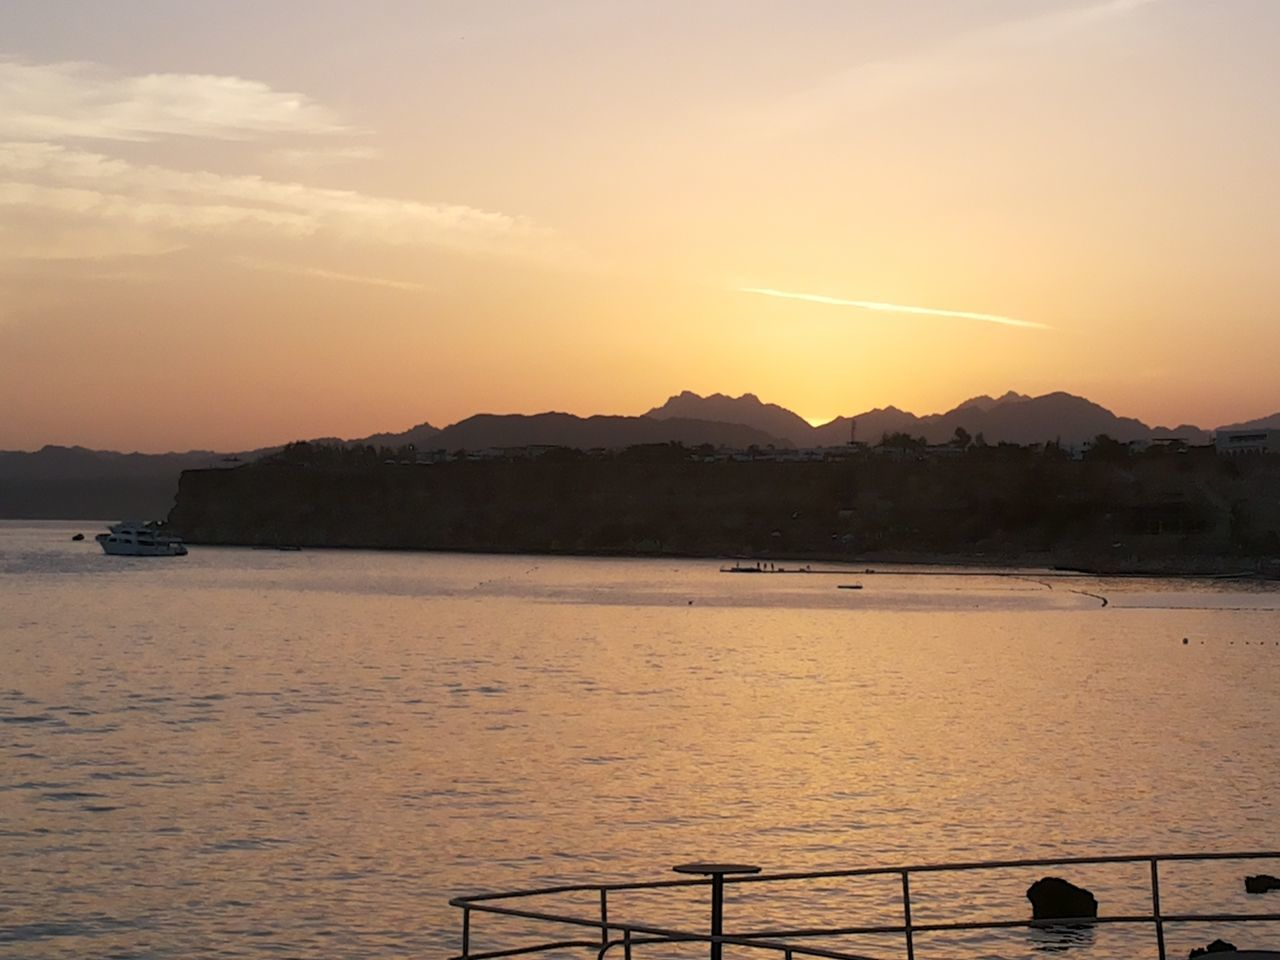 sunset, water, scenics, nature, railing, beauty in nature, sky, sea, tranquility, outdoors, tranquil scene, mountain, no people, day